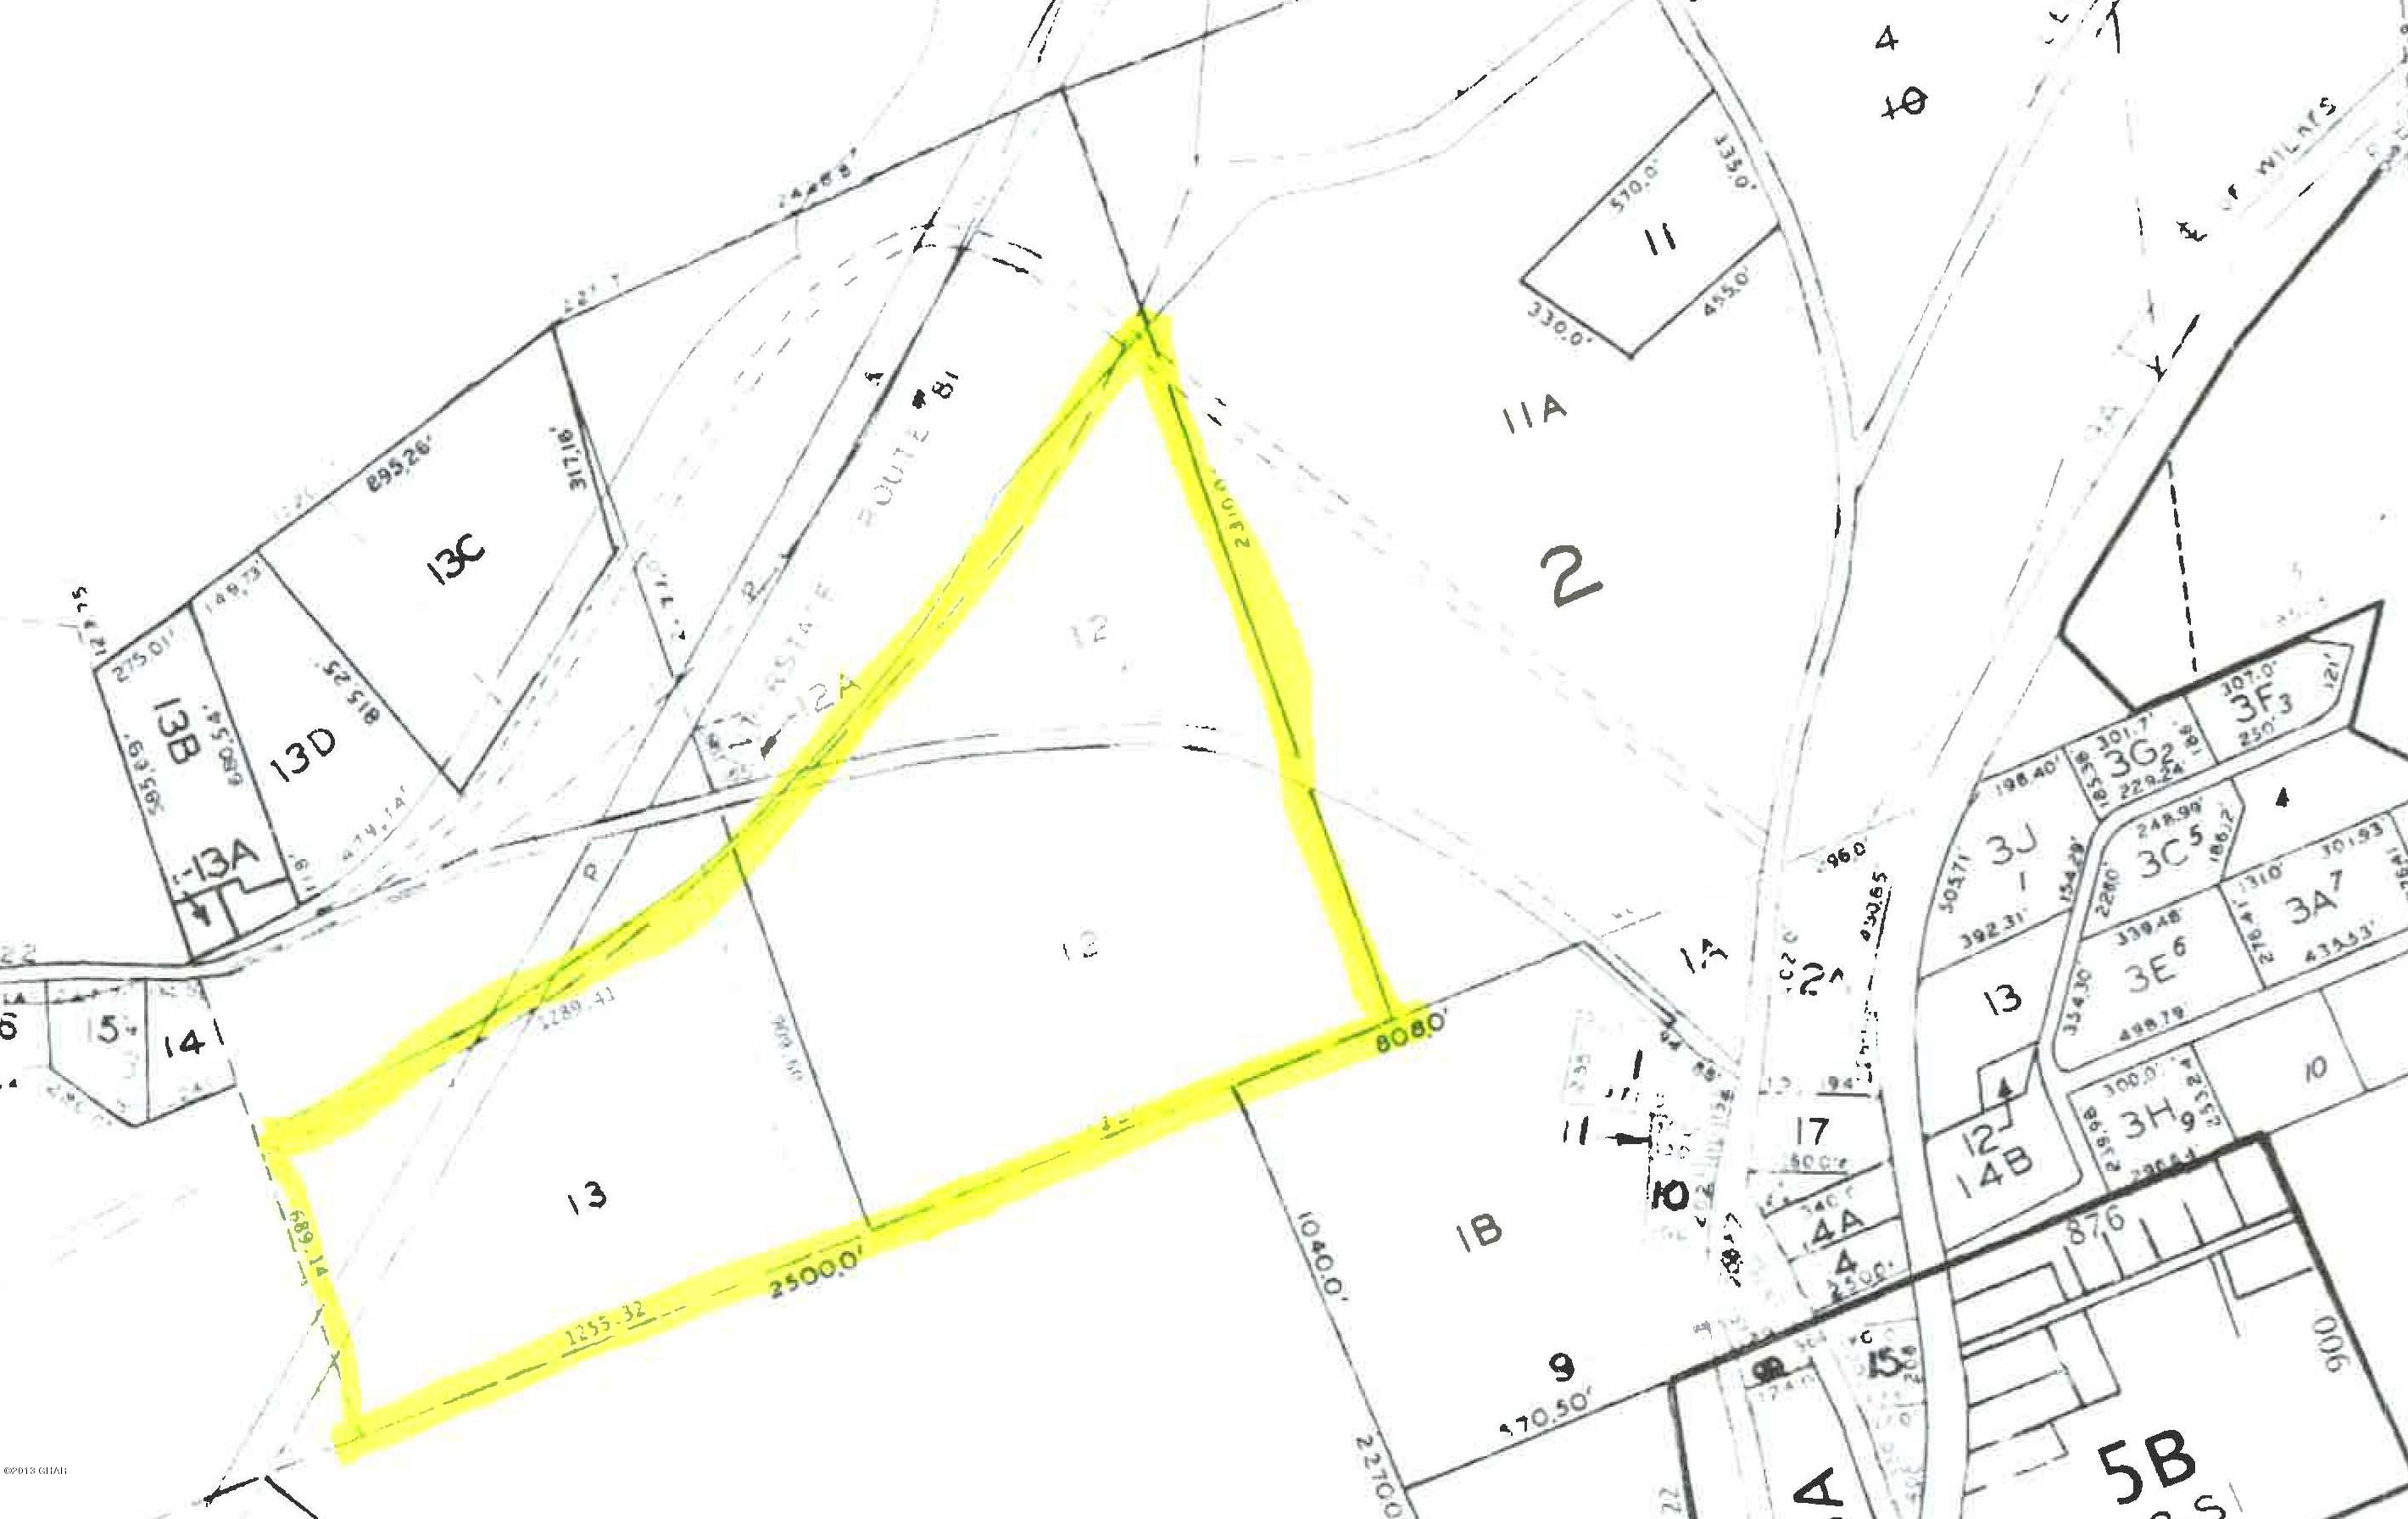 Image of Acreage for Sale near Mountain Top, Pennsylvania, in Luzerne county: 58.84 acres